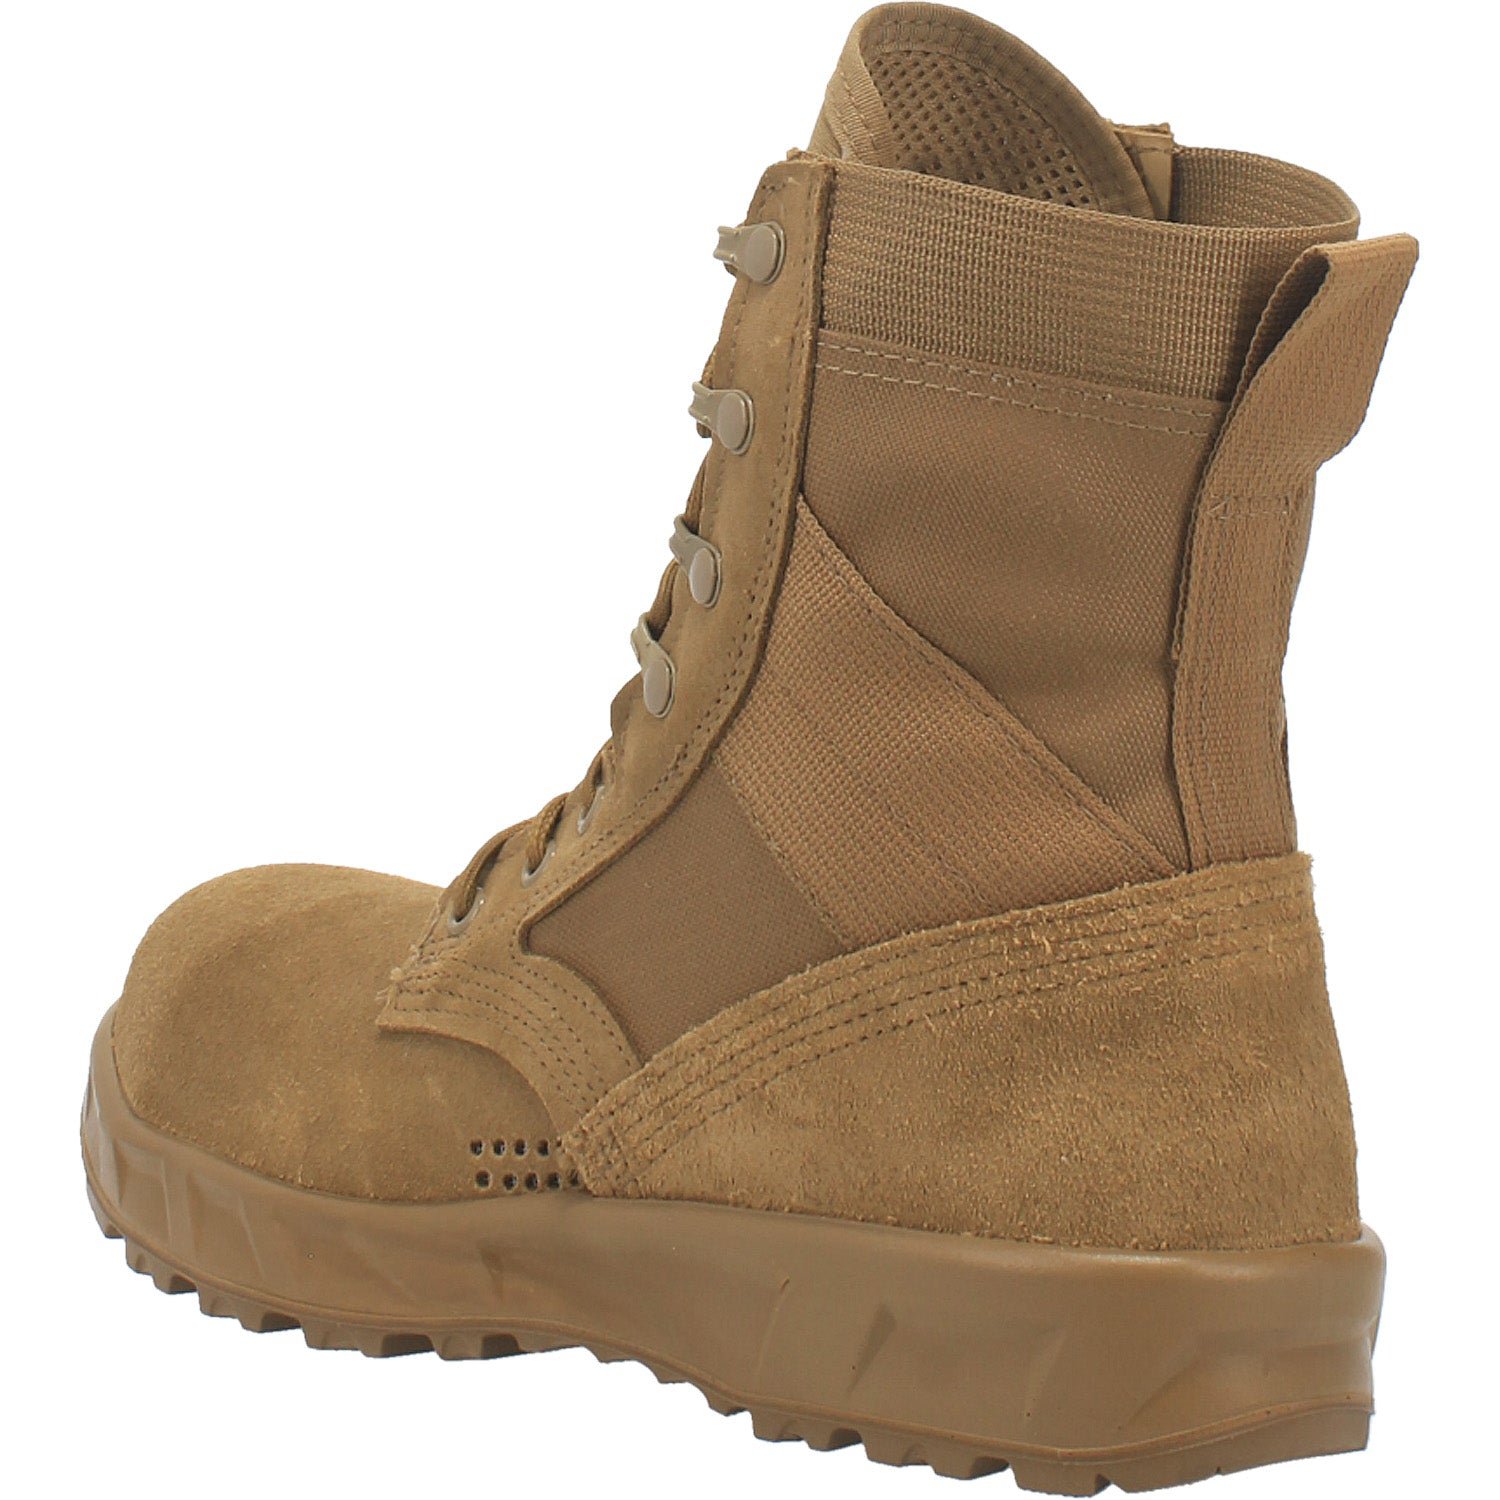 T2 Ultra Light Hot Weather Steel Toe Combat Boot 14940839772202